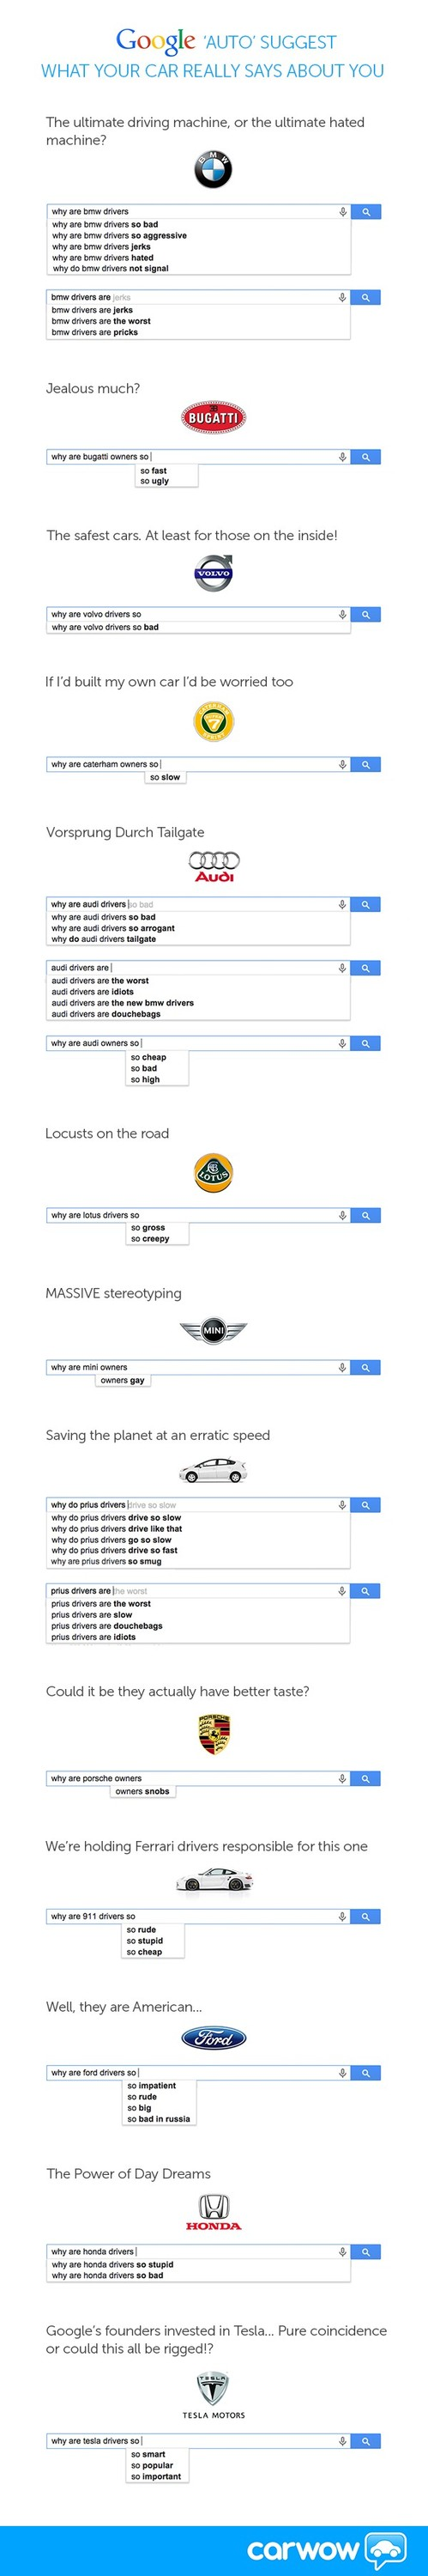 CarWow - Google AutoSuggest results